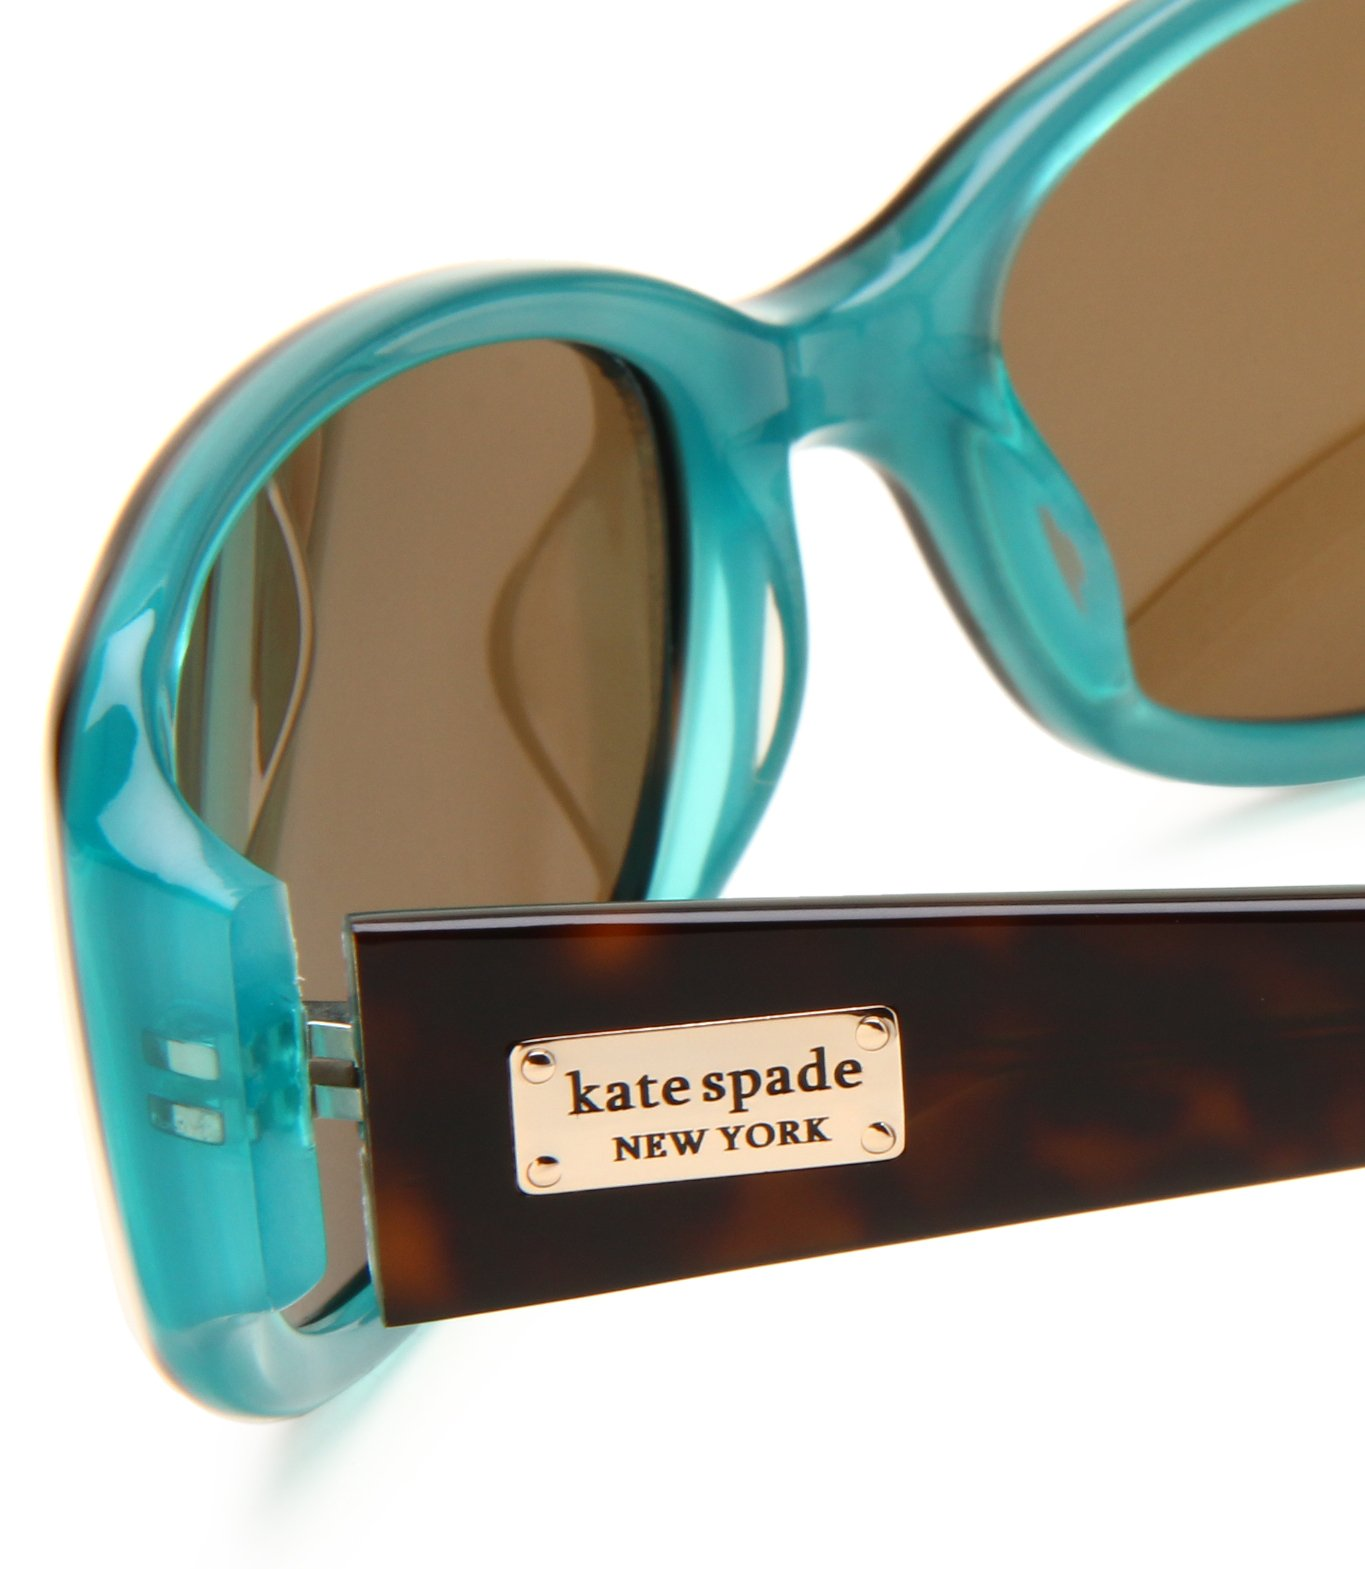 Kate Spade Women's Paxton/S Rectangular Sunglasses,Aqua Tortoise Frame/Brown Polarized Lens,one size by Kate Spade New York (Image #4)